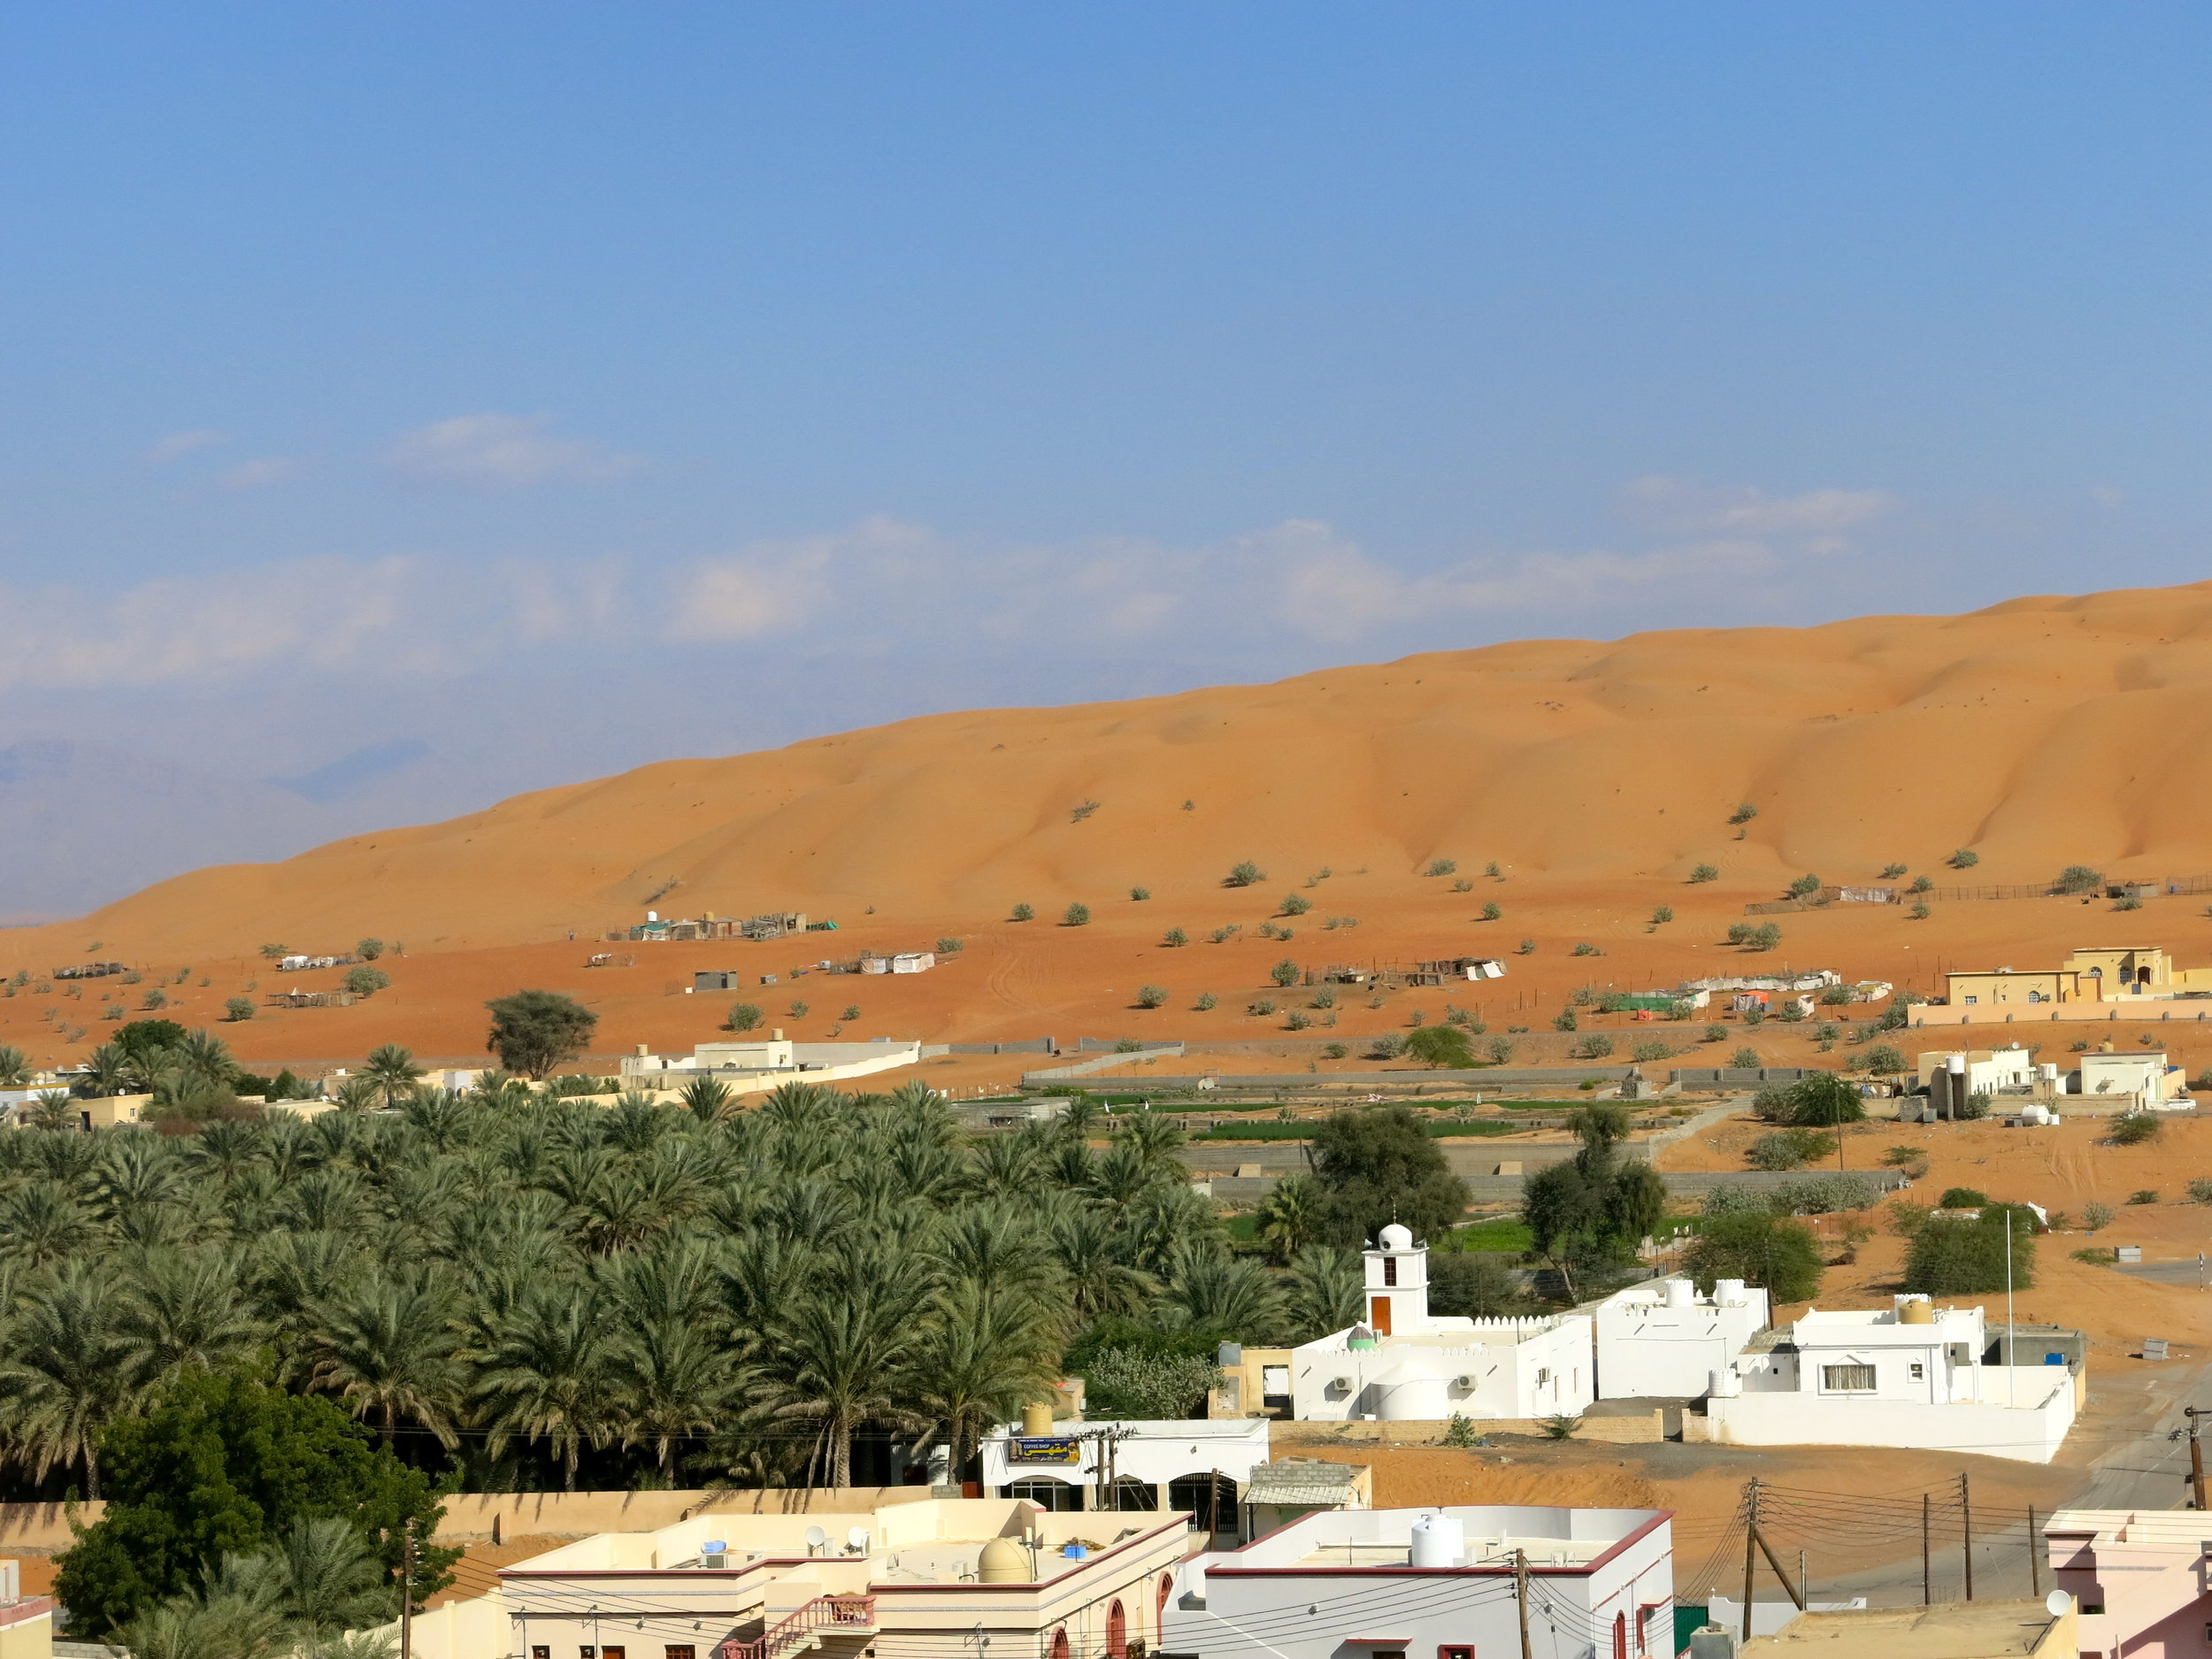 The last village before the dunes of Wahiba Sands